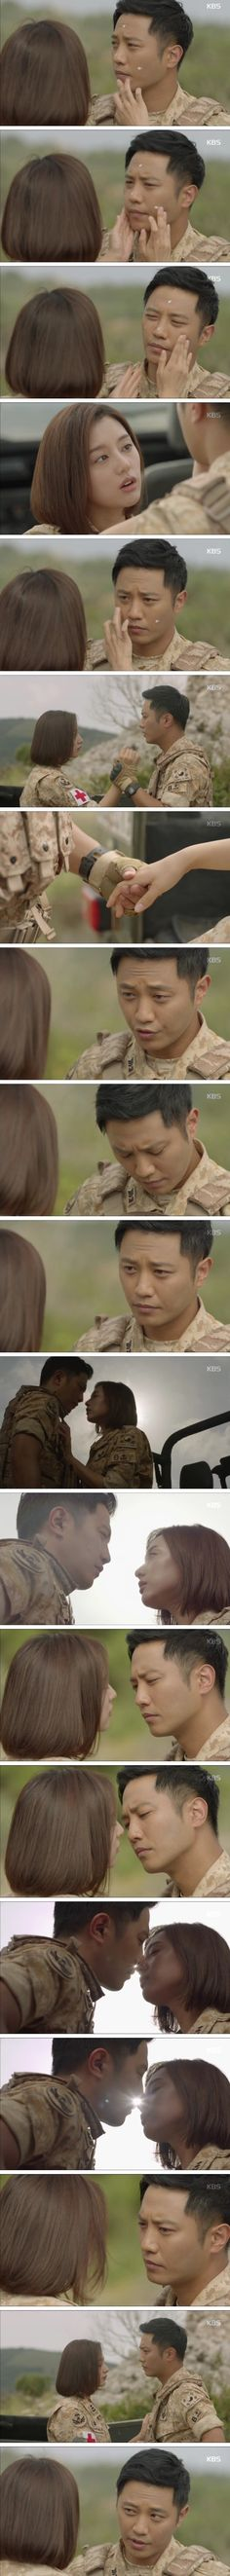 Descendants of the Sun (태양의 후예) Korean - Drama - Episode 10 - Picture @ HanCinema :: The Korean Movie and Drama Database